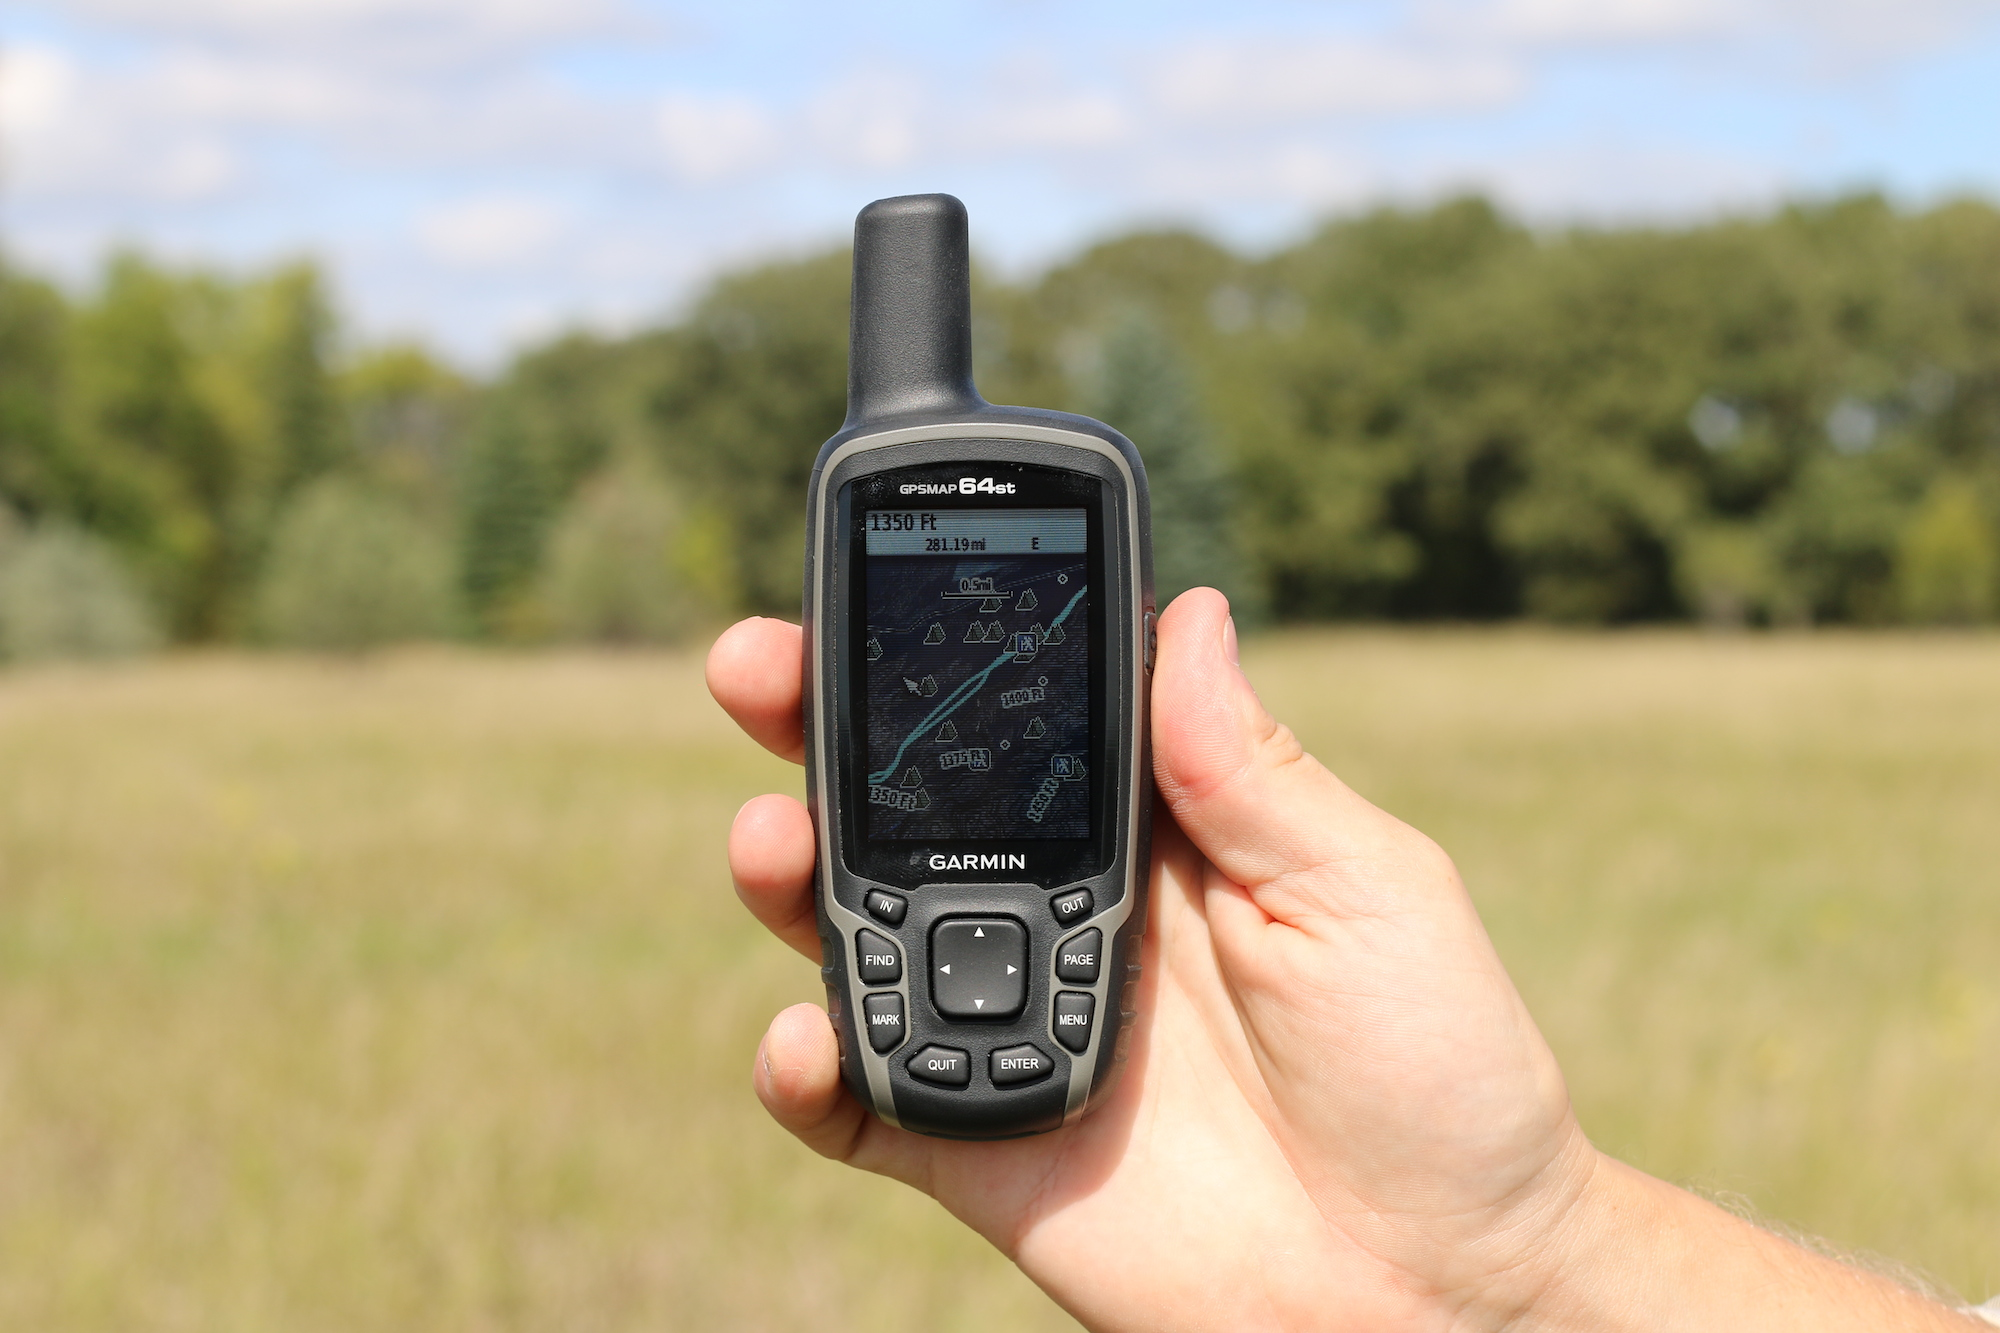 Wherever You Find Yourself, Find Your Way Back with the Garmin 64st GPS [Review]